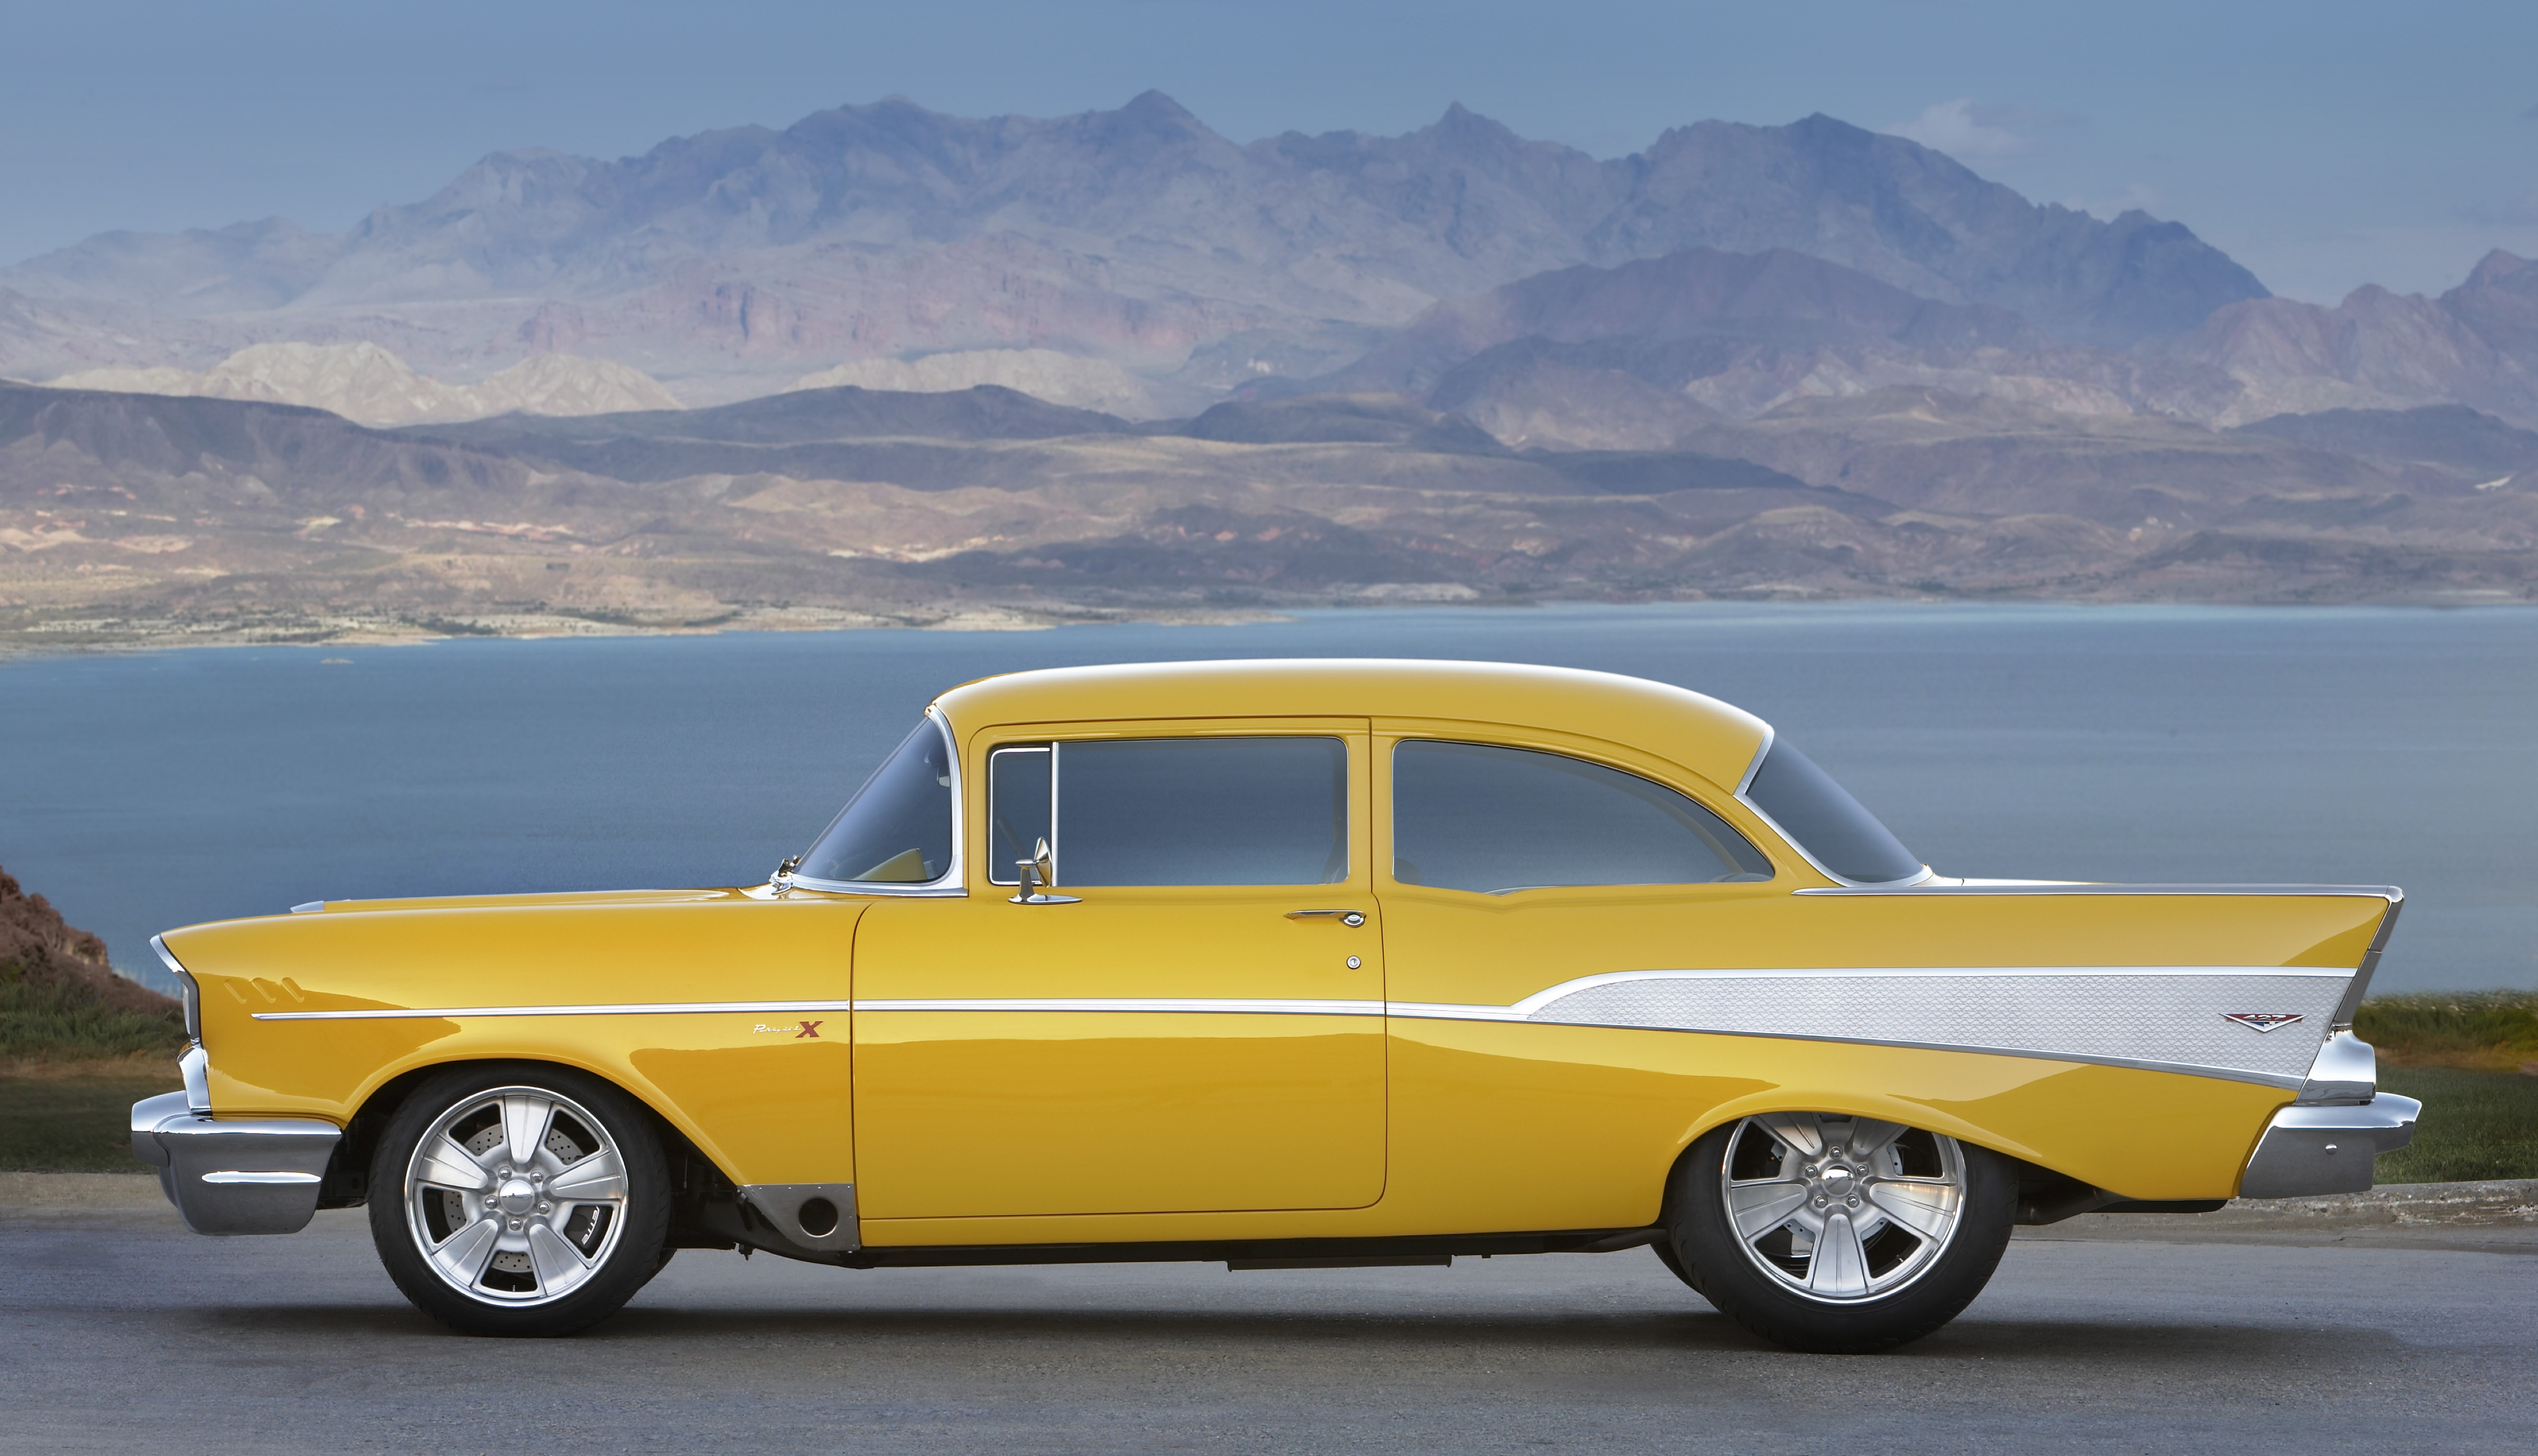 50s Car Wallpaper Iphone Yellow Chevy Bel Air Project X 4k Ultra Hd Wallpaper